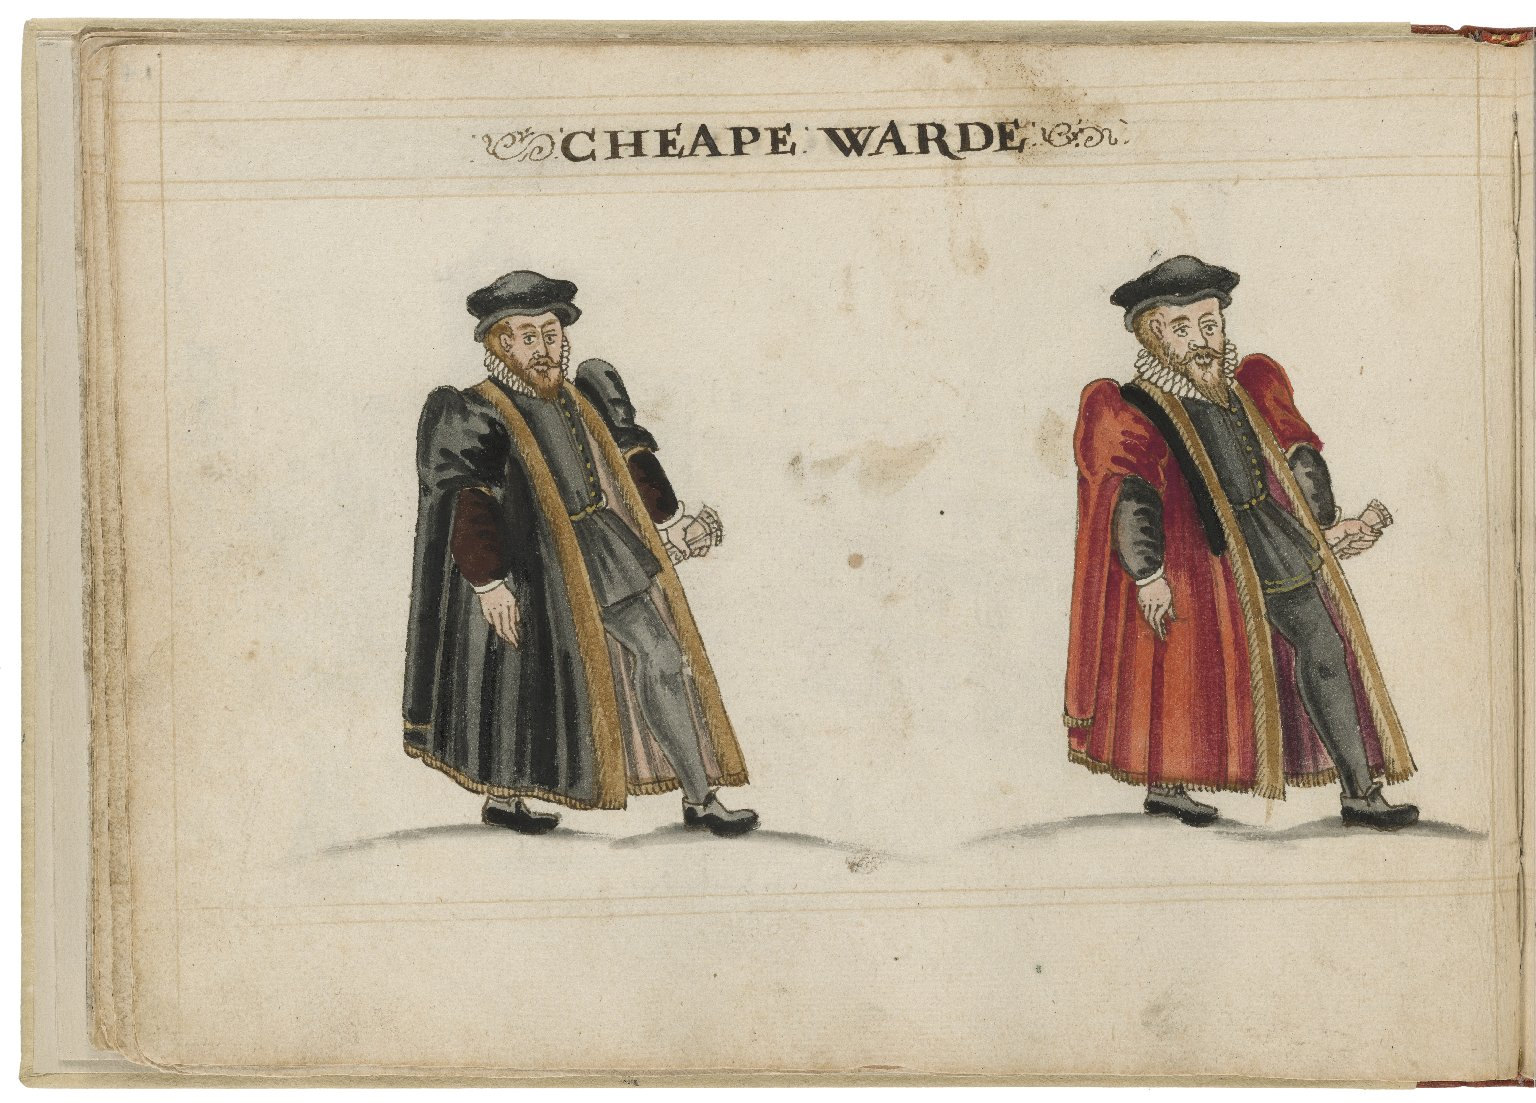 Watercolour painting of the alderman and deputy in charge of Cheap Ward by Hugh Alley. Image courtesy of the Folger Digital Image Collection.